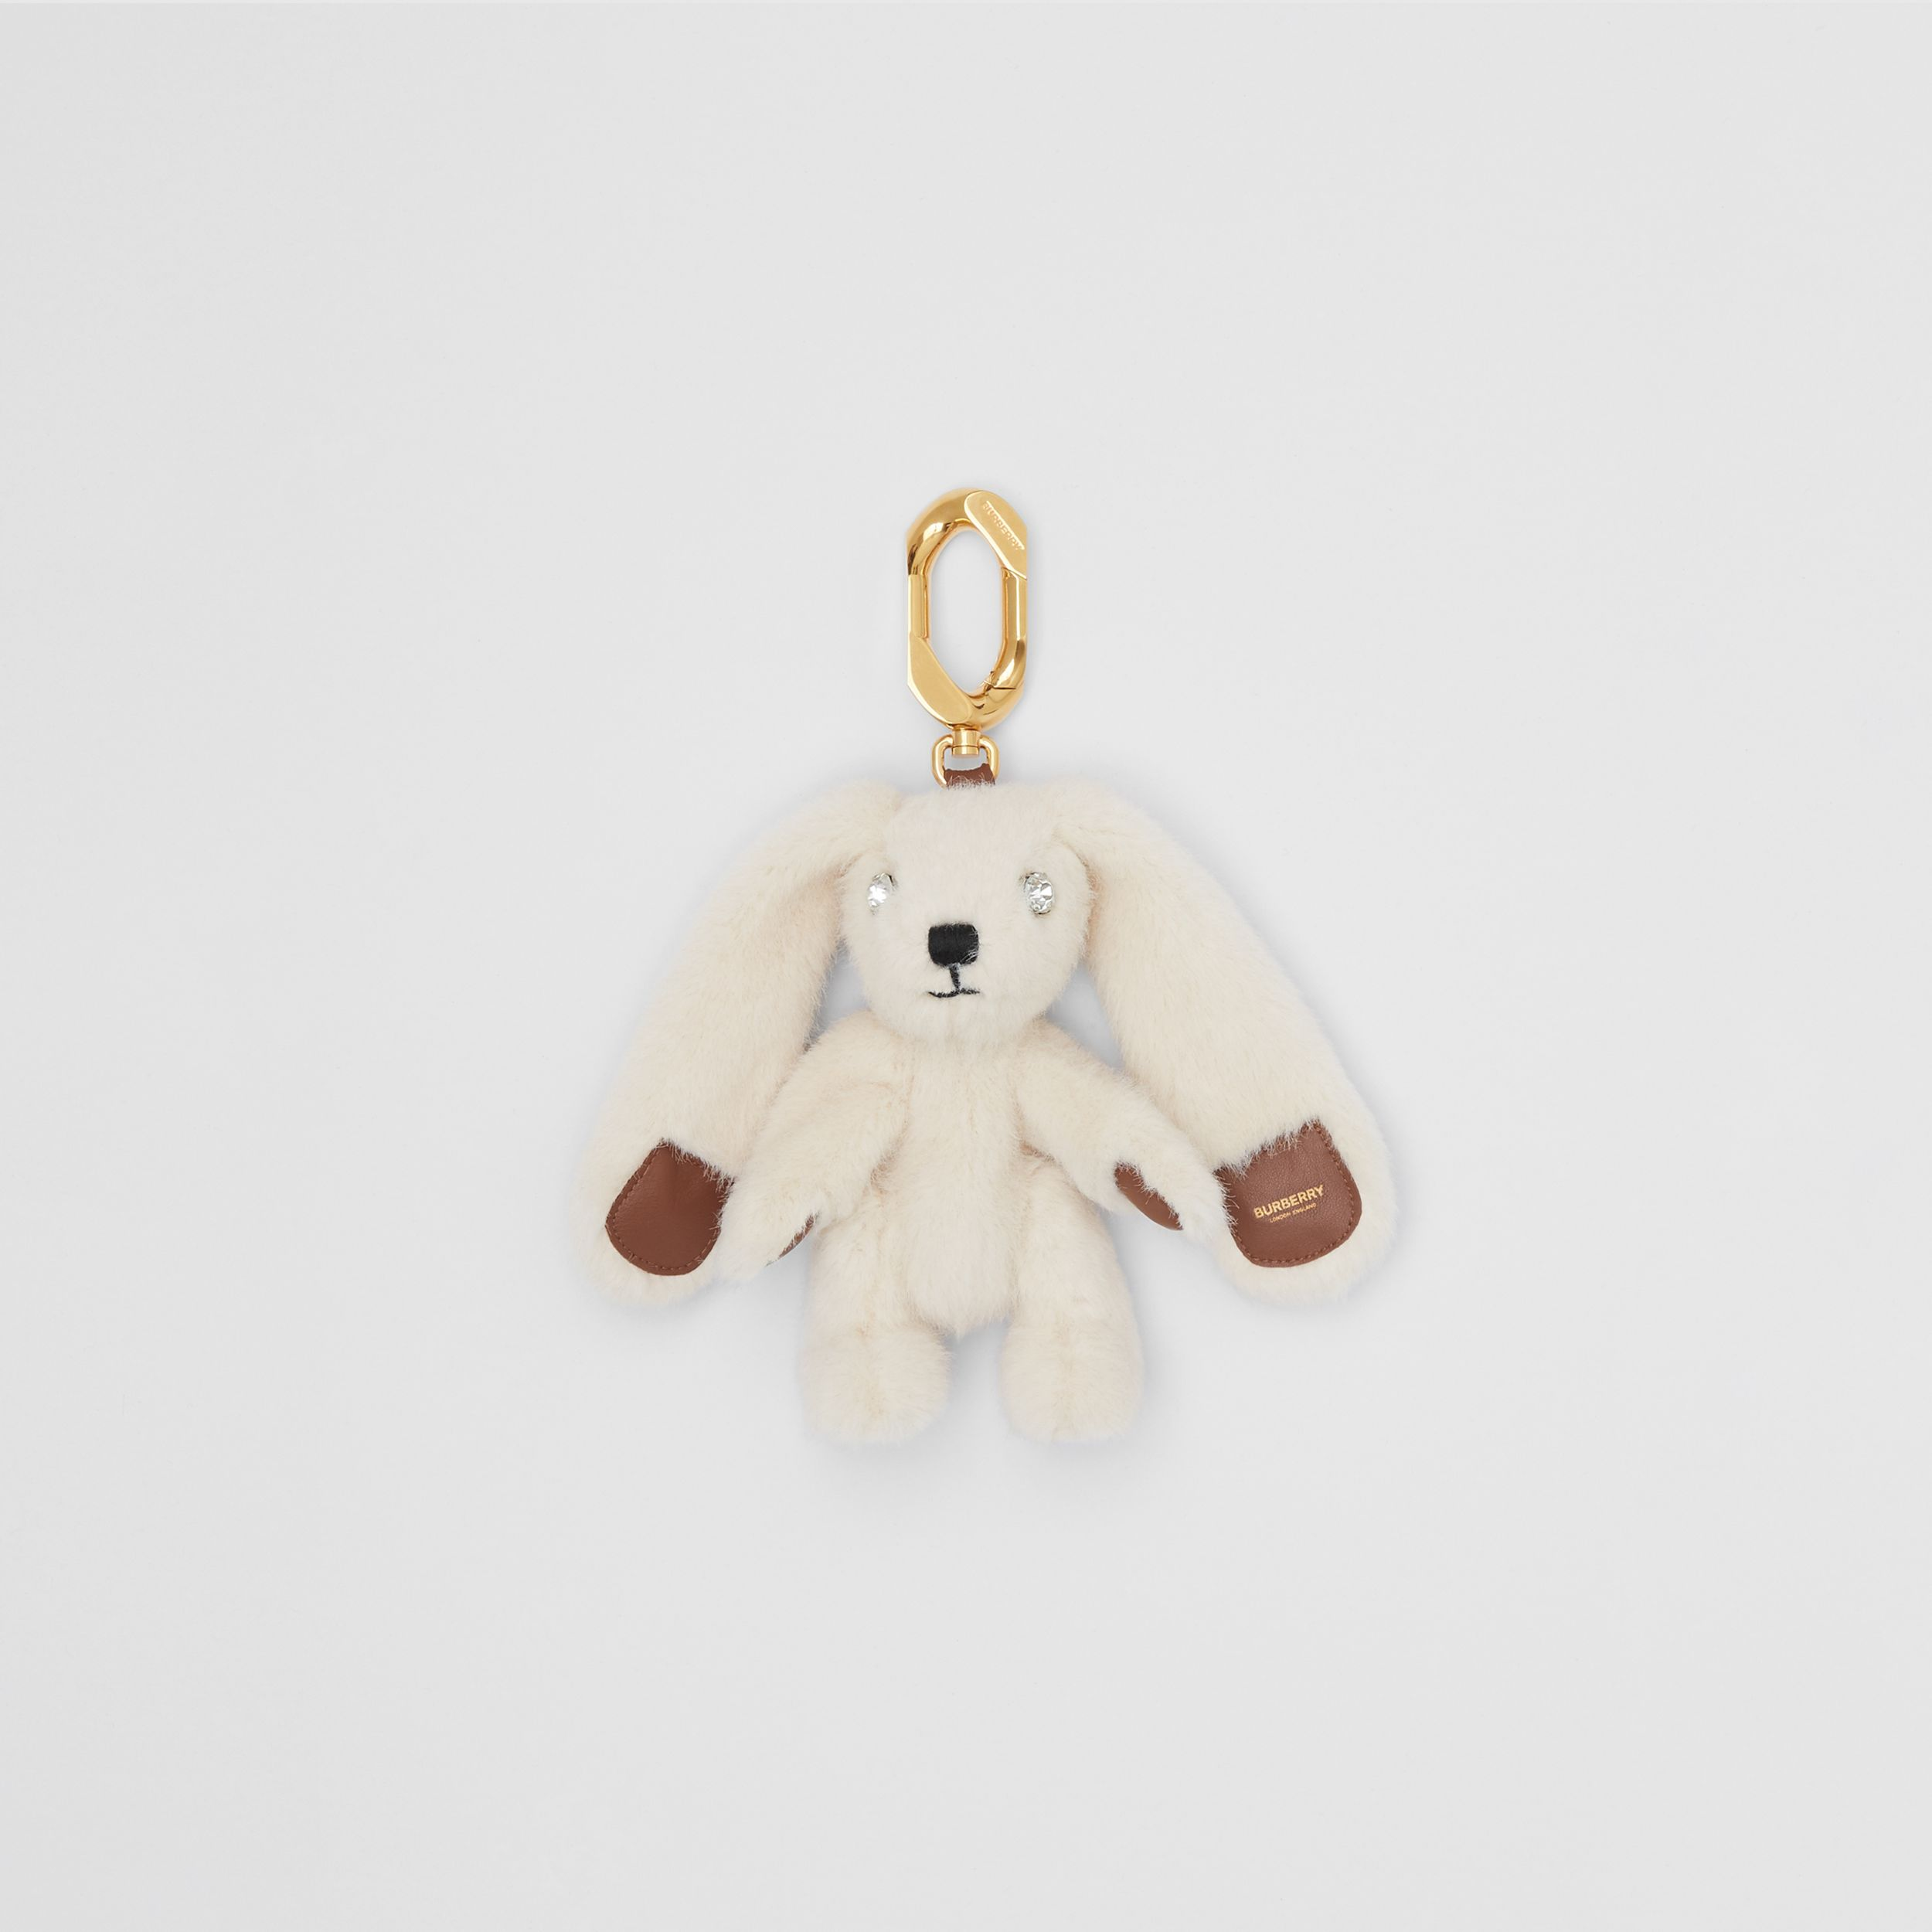 Embellished Faux Fur and Leather Rabbit Charm in Buttermilk | Burberry - 1